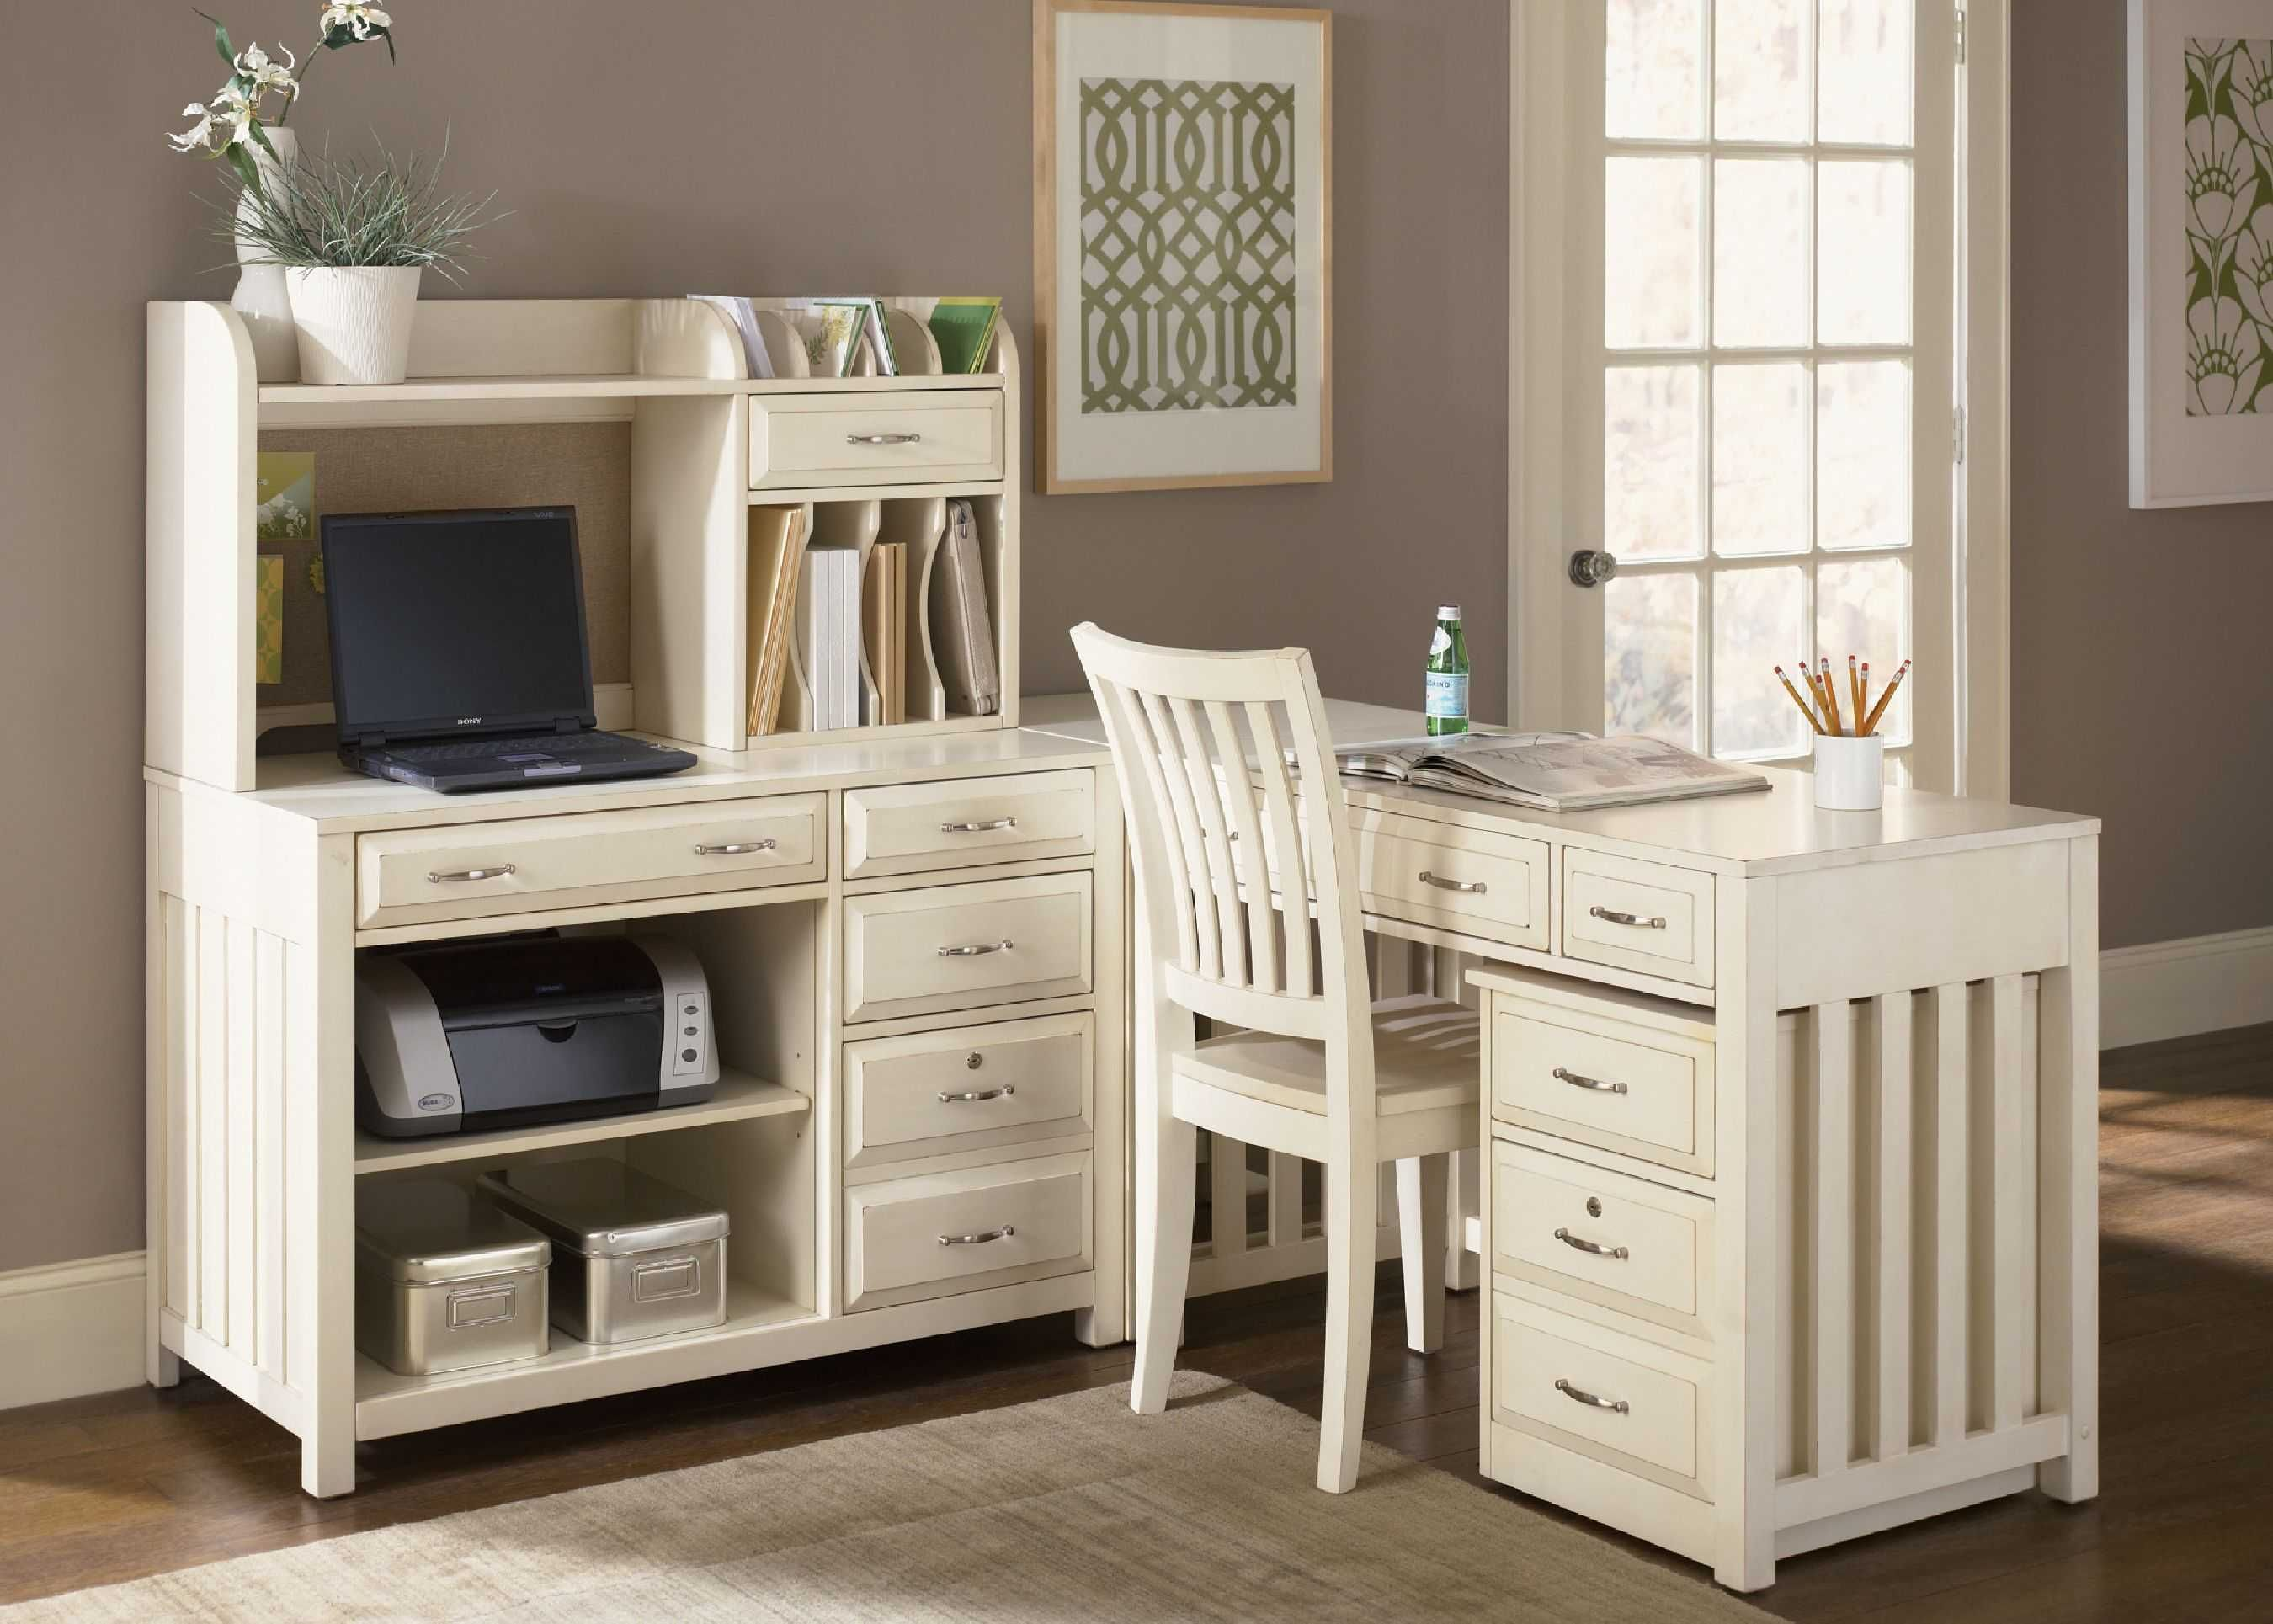 Rooms To Go Office Furniture Nice Amazing Rooms To Go Home Office Furniture 11 For Your Home